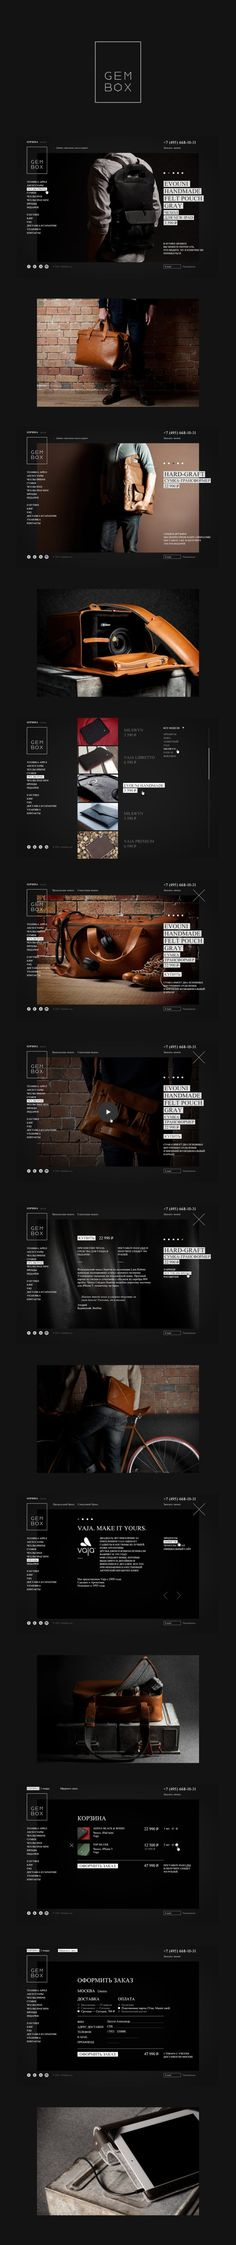 Interesting theme. Black & white modern with colored photography.